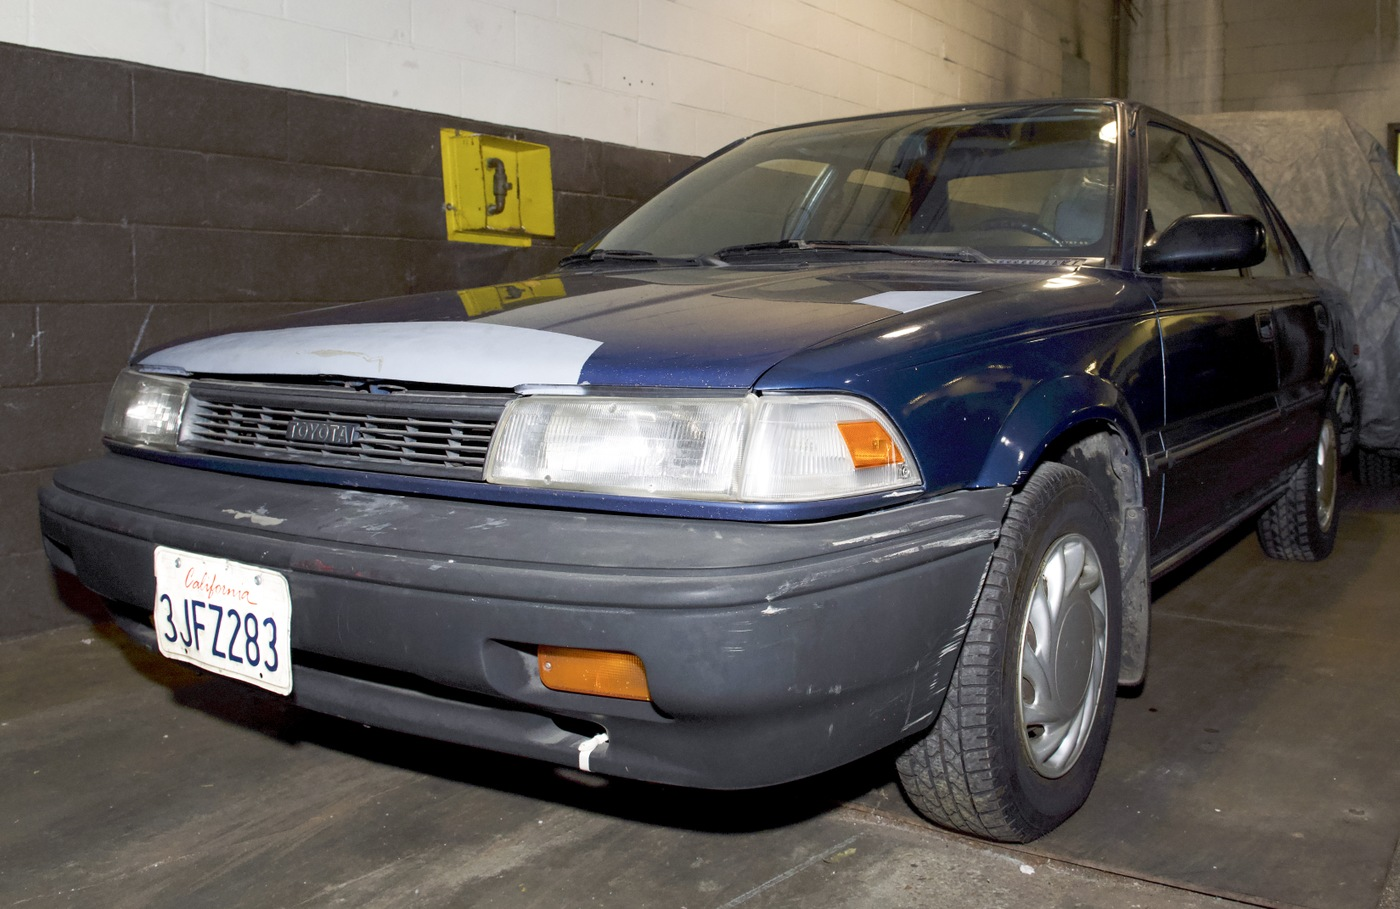 Photo of a blue car with a California license plate, used by a Sept. 11, 2001 hijacker to get to the airport.